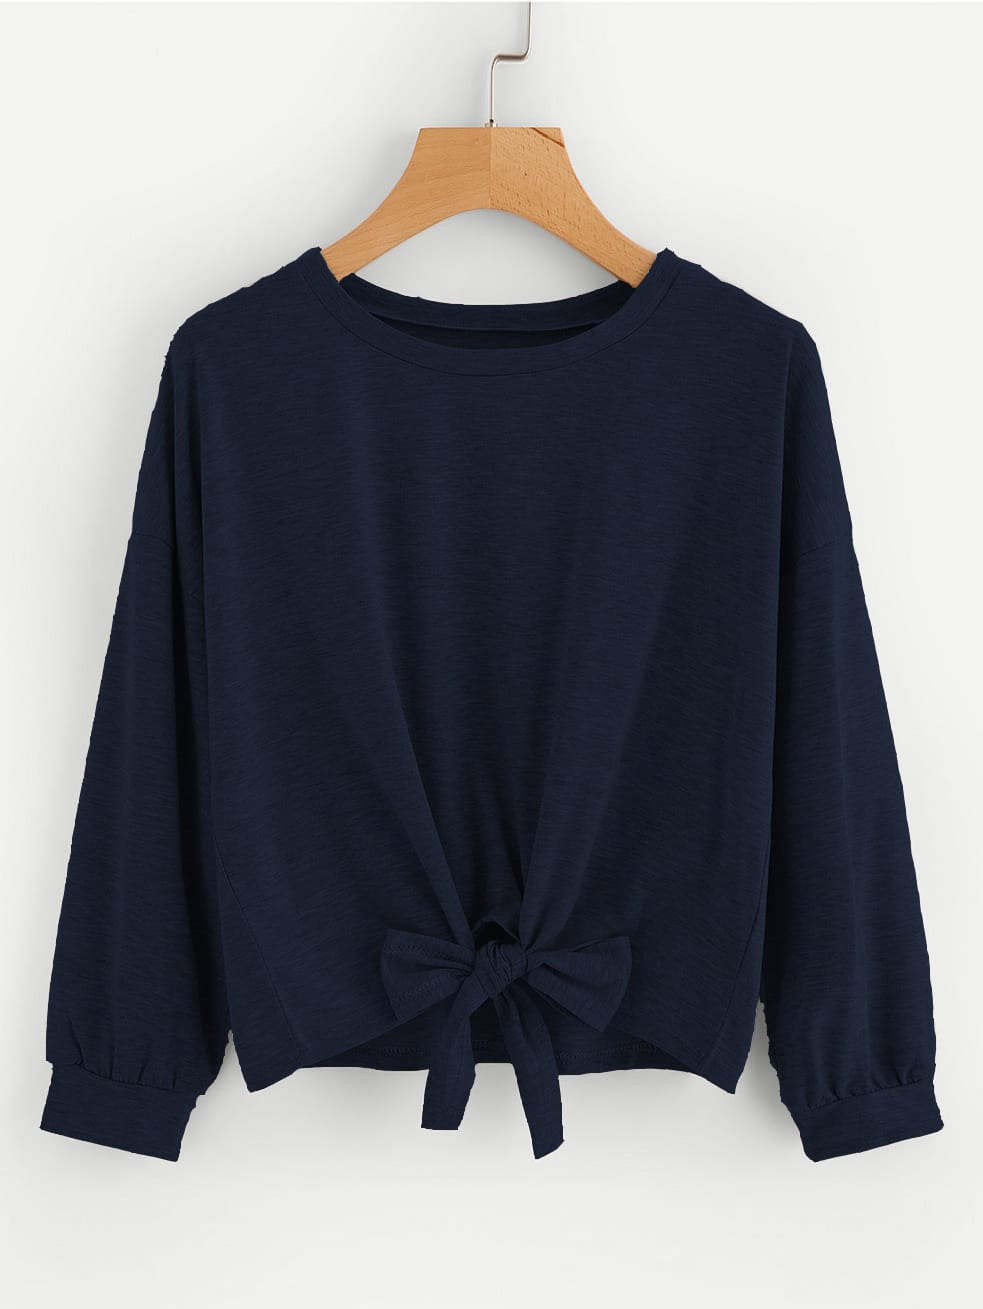 Bow Tie Front Drop Shoulder Sweatshirt drop shoulder grommet tie detail sweatshirt